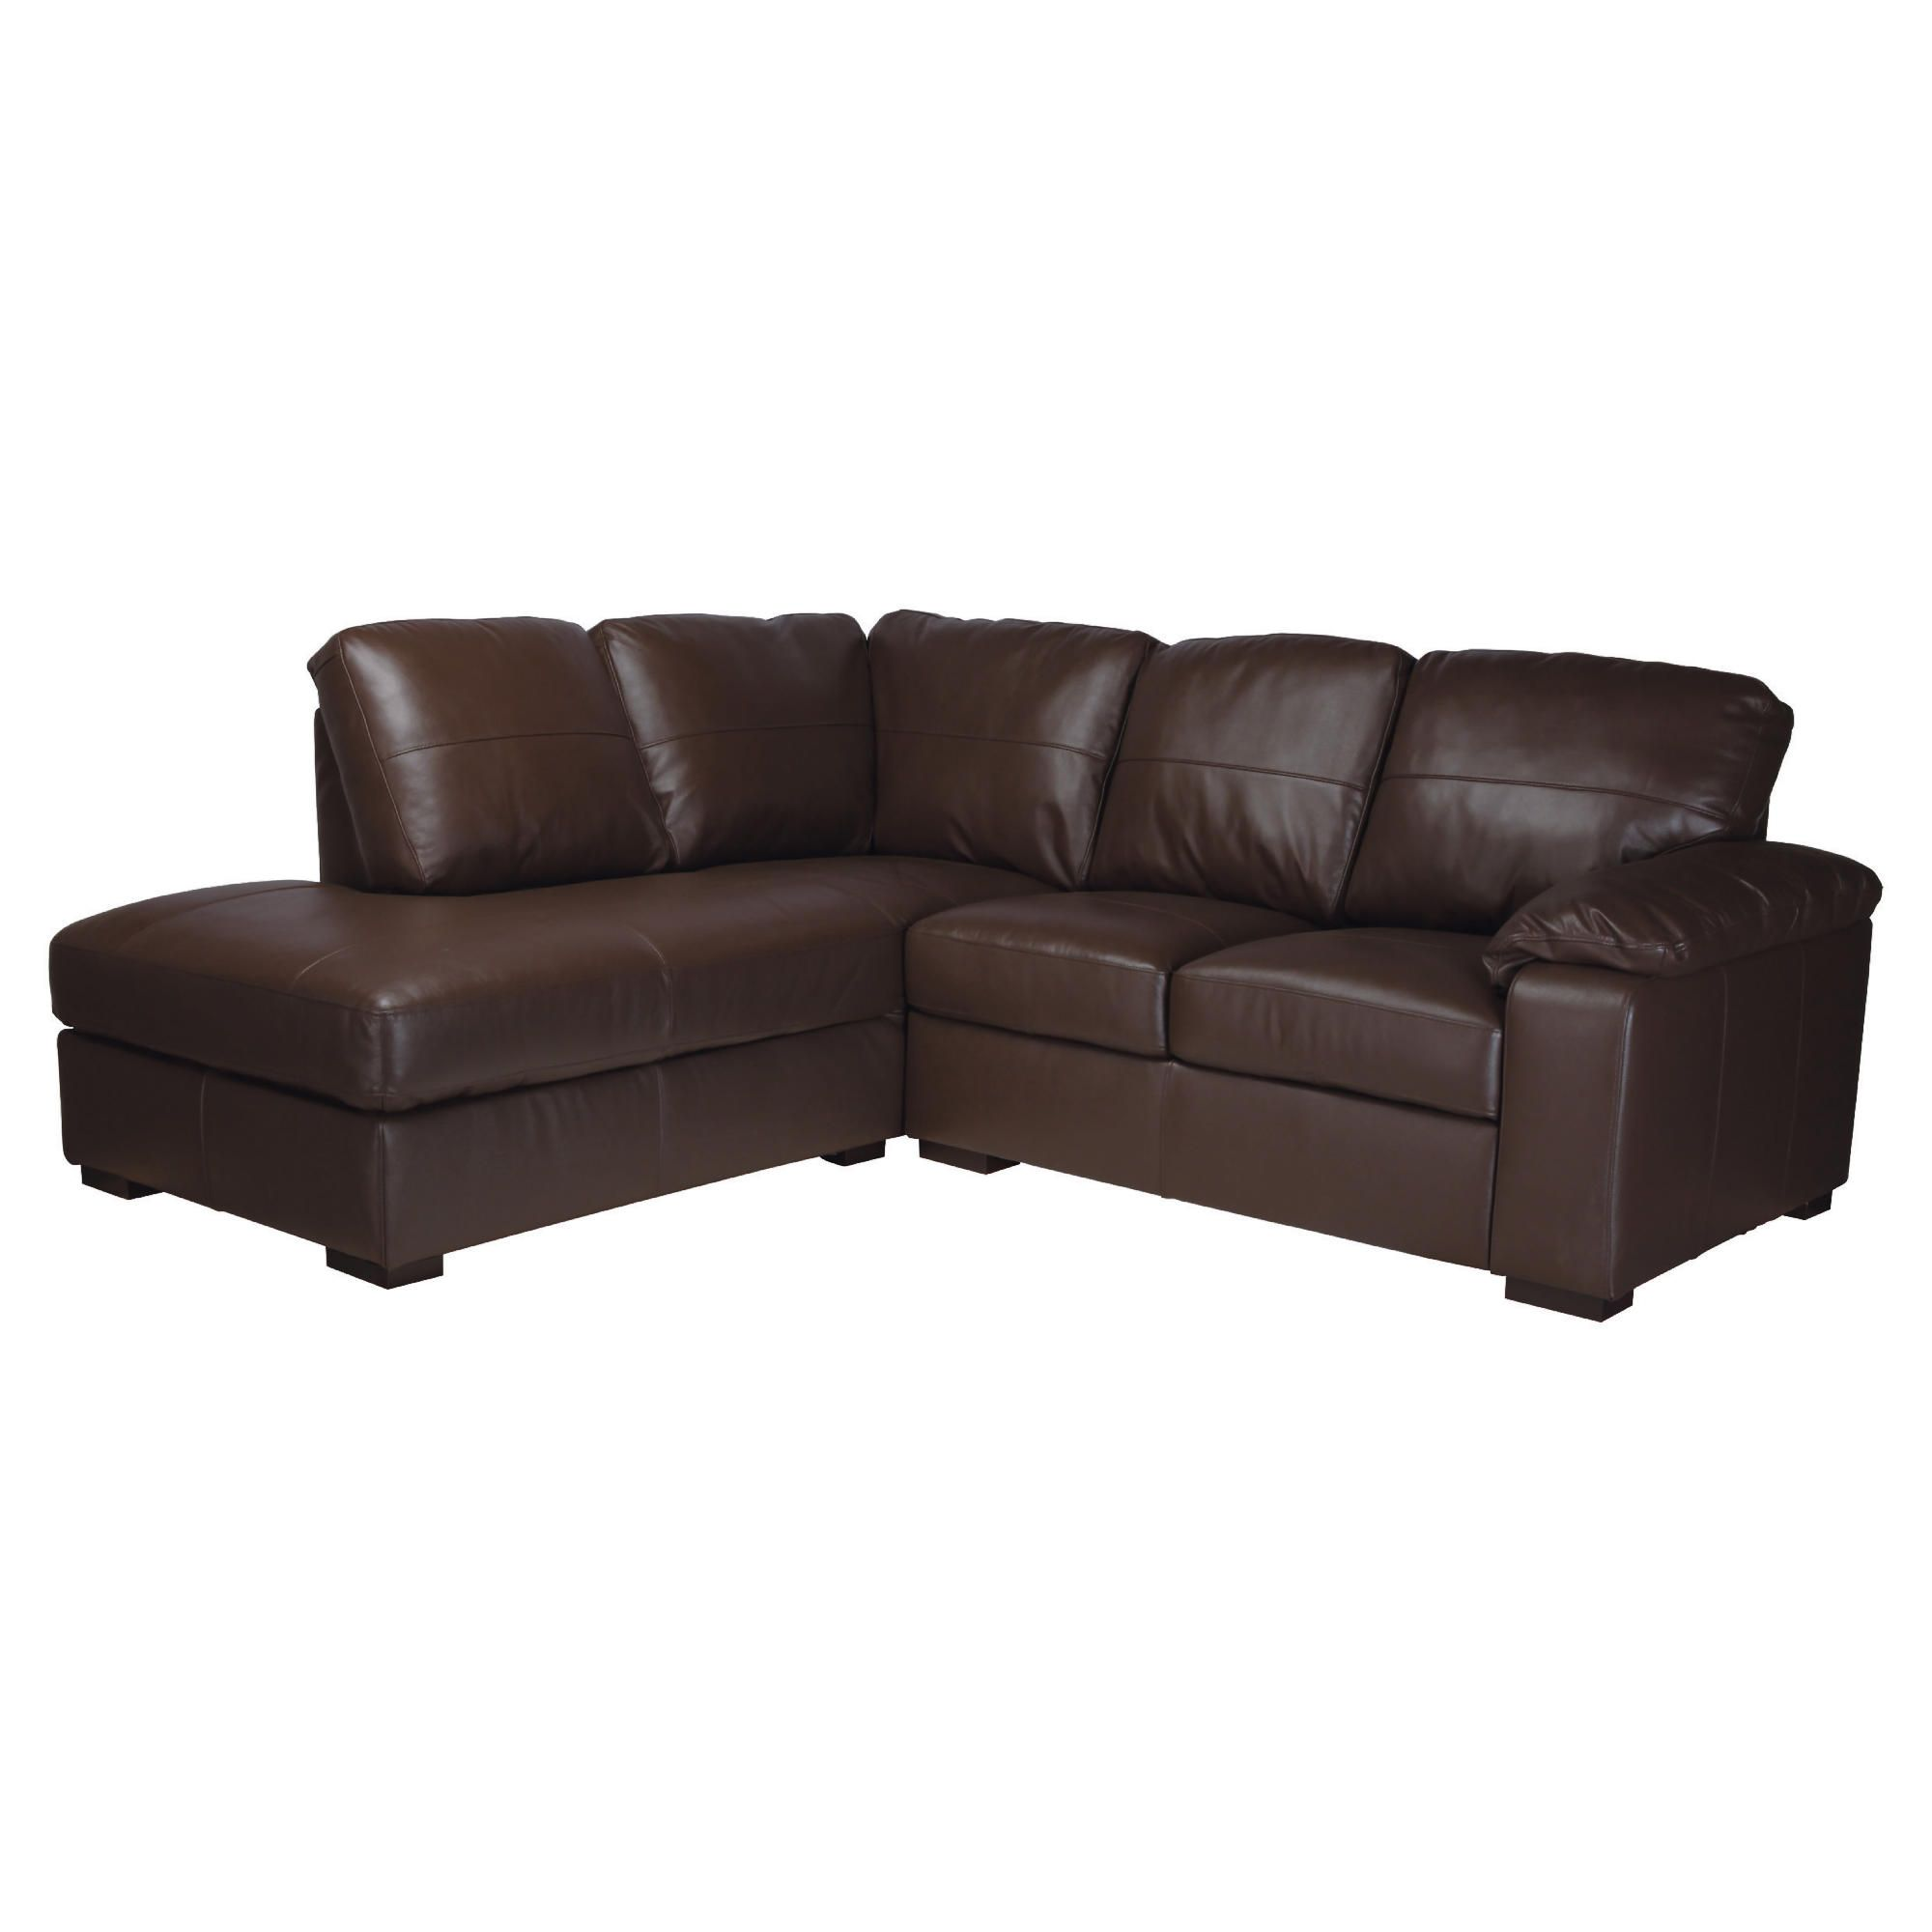 Ashmore leather corner chaise sofa bed brown left hand for Brown chaise sofa bed